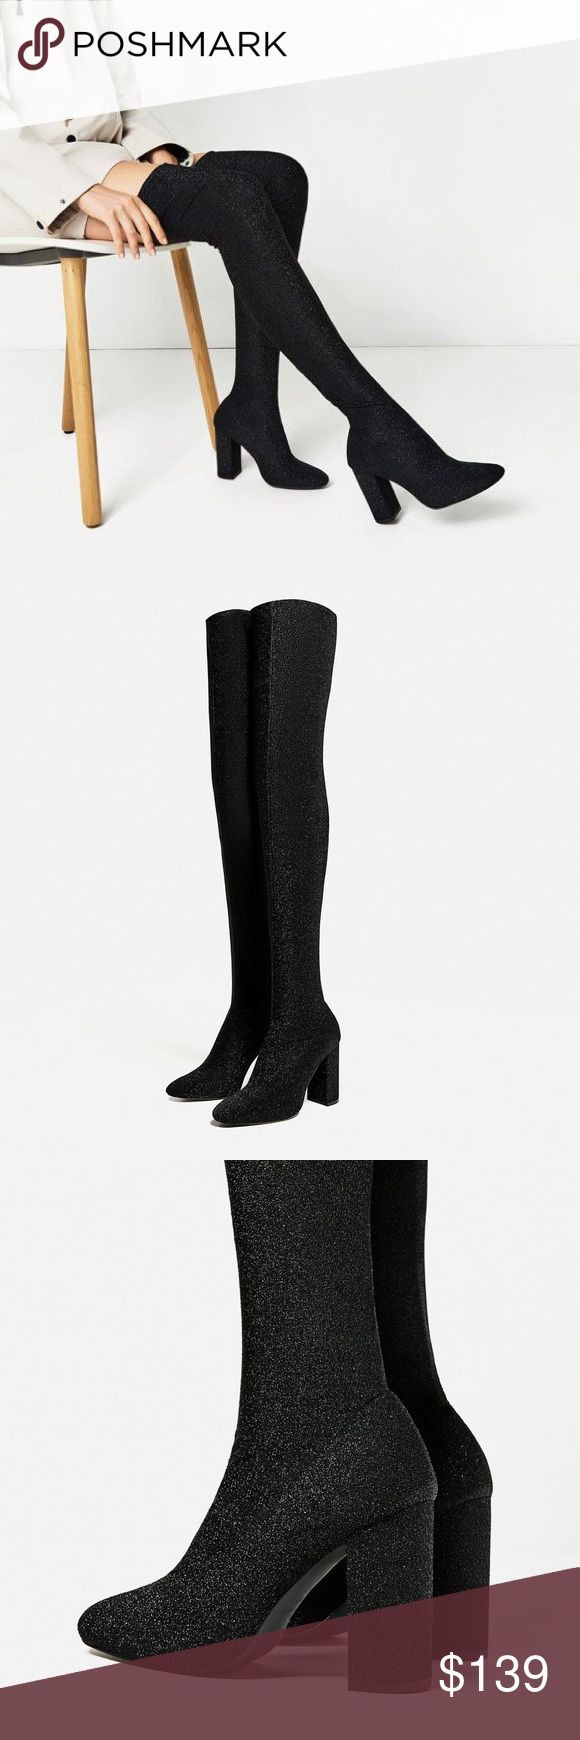 Zara over the knee stretch boots -- size 8 Classy & sexy at same time.... shiny stretch fabric pulls up like stockings.... rounded toes, 3.7 inch heels... euro size 39 Zara Shoes Heeled Boots